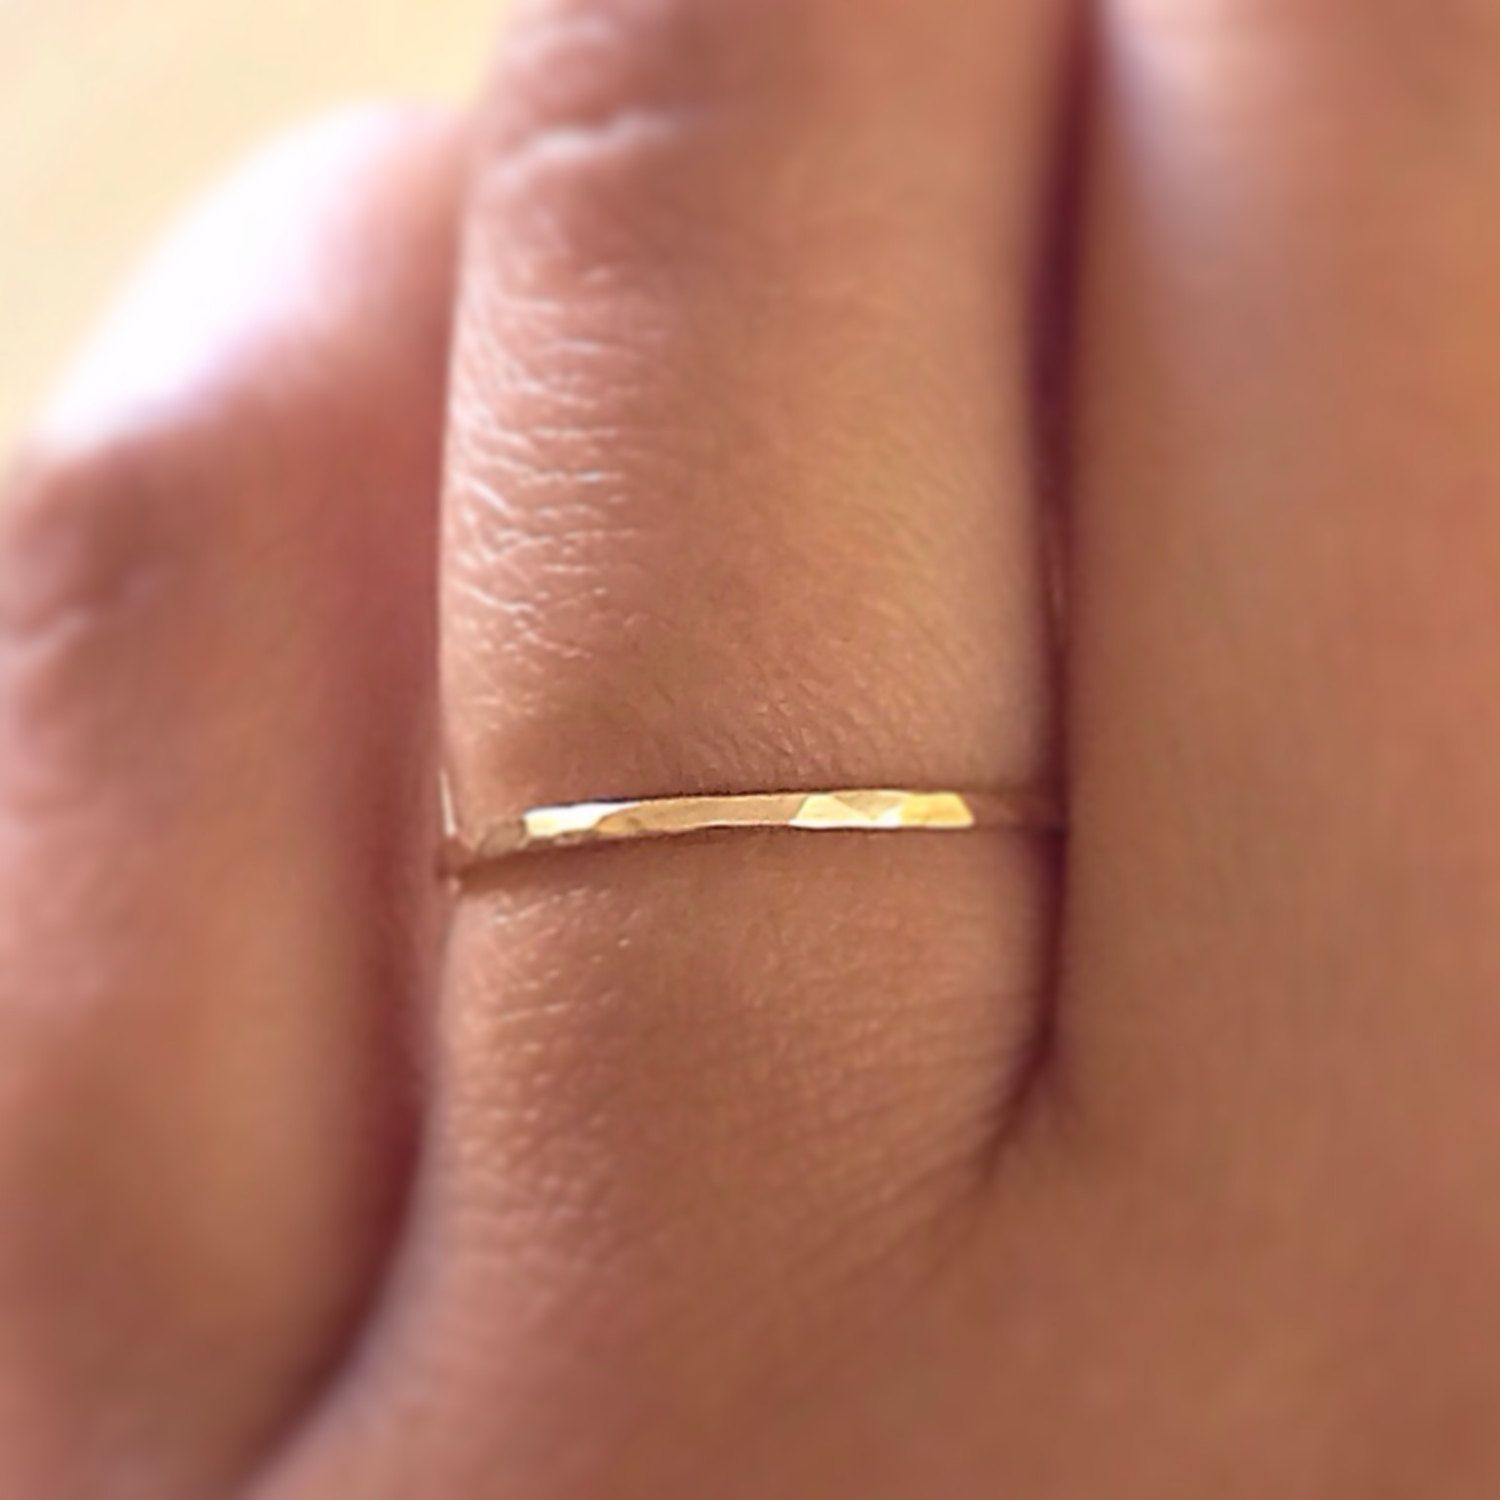 Goldring ehering  Stack-Goldring, 14k Gold gefüllt Stapeln Ring, Goldring, Gold ...